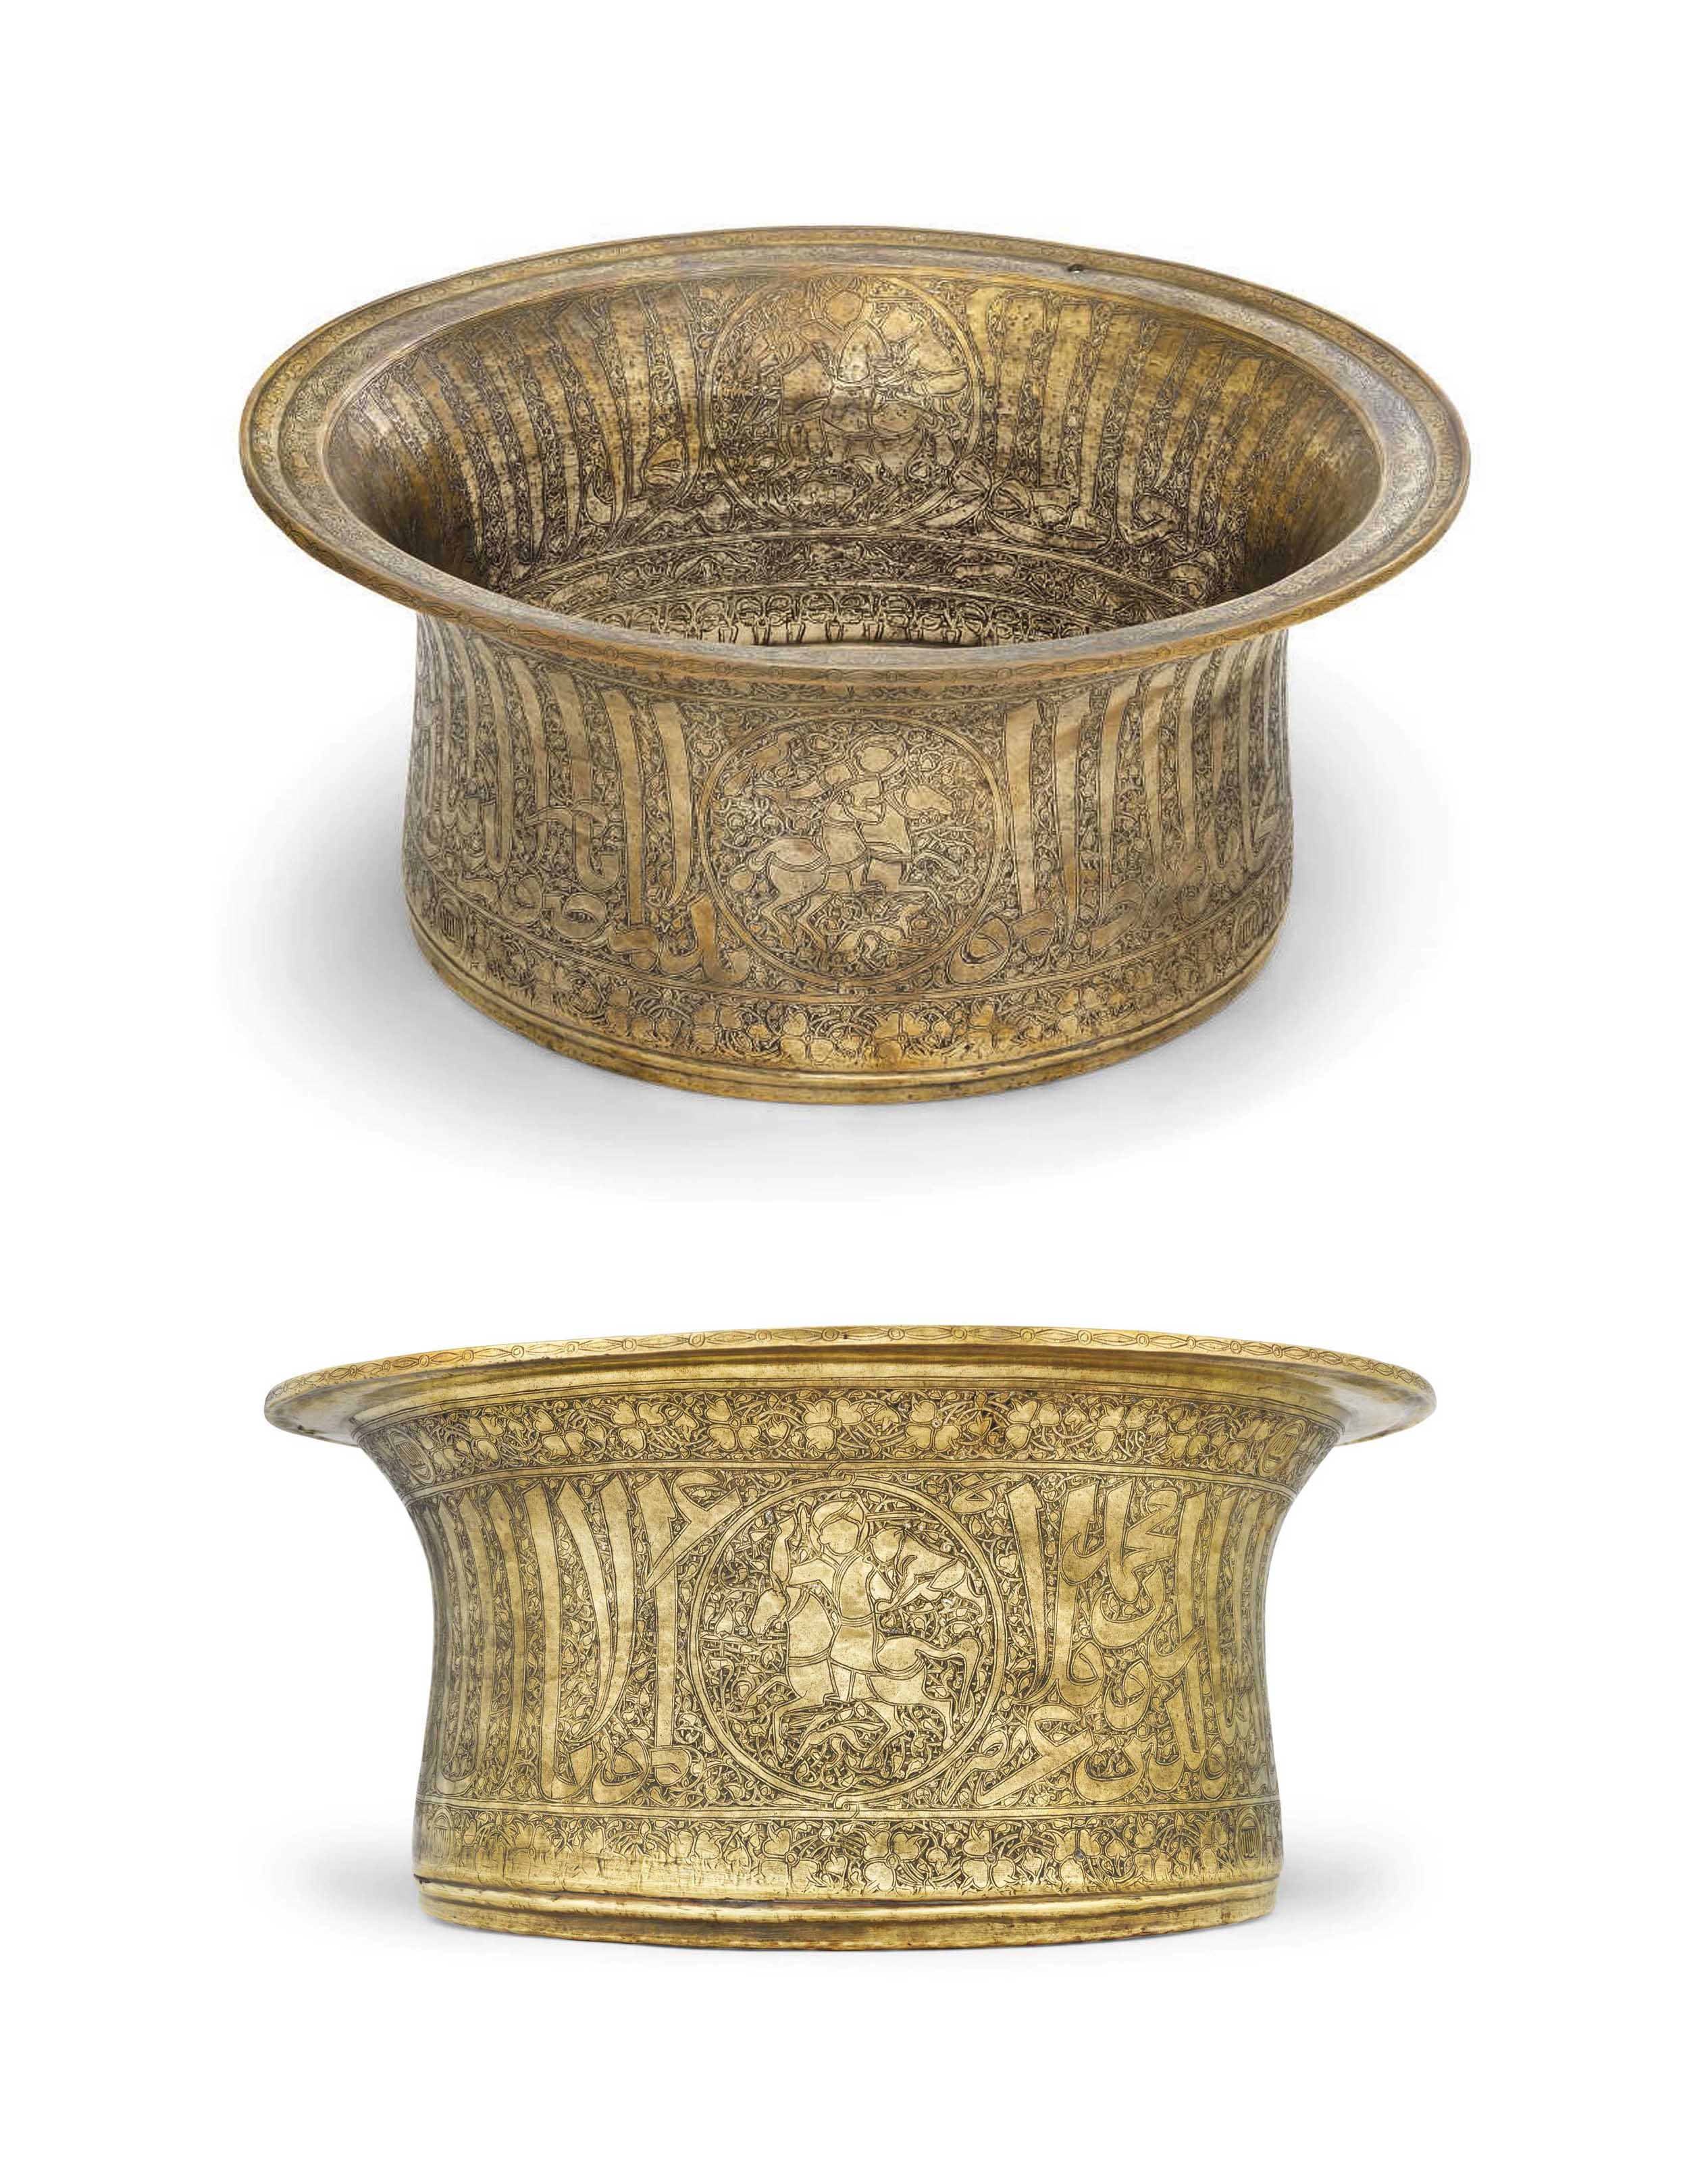 A GOLD AND SILVER-INLAID BRASS